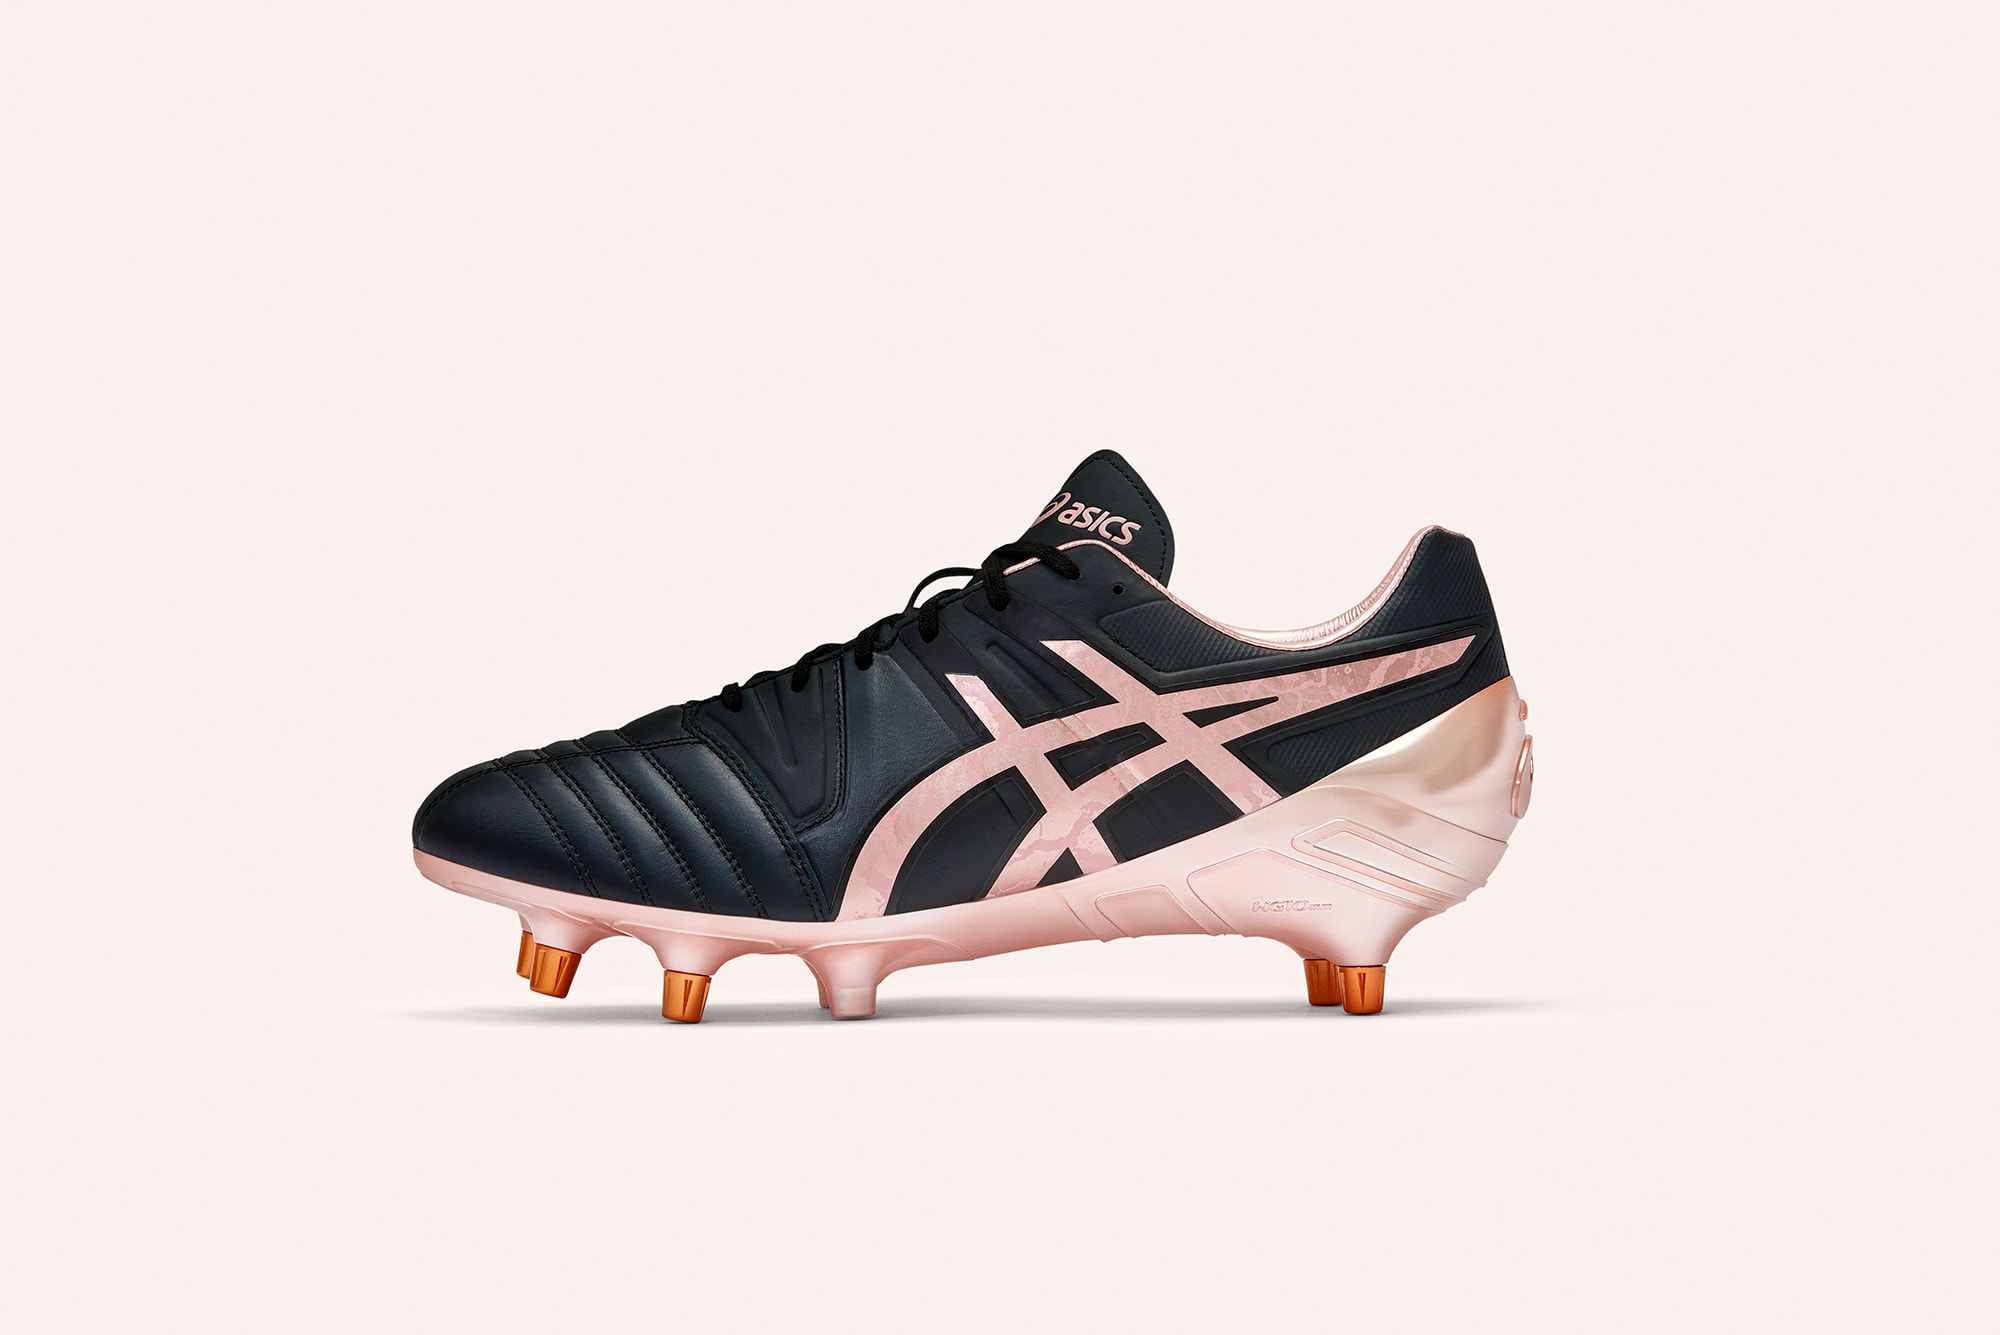 studio photography of asics gel lethal rugby world cup rugby boot